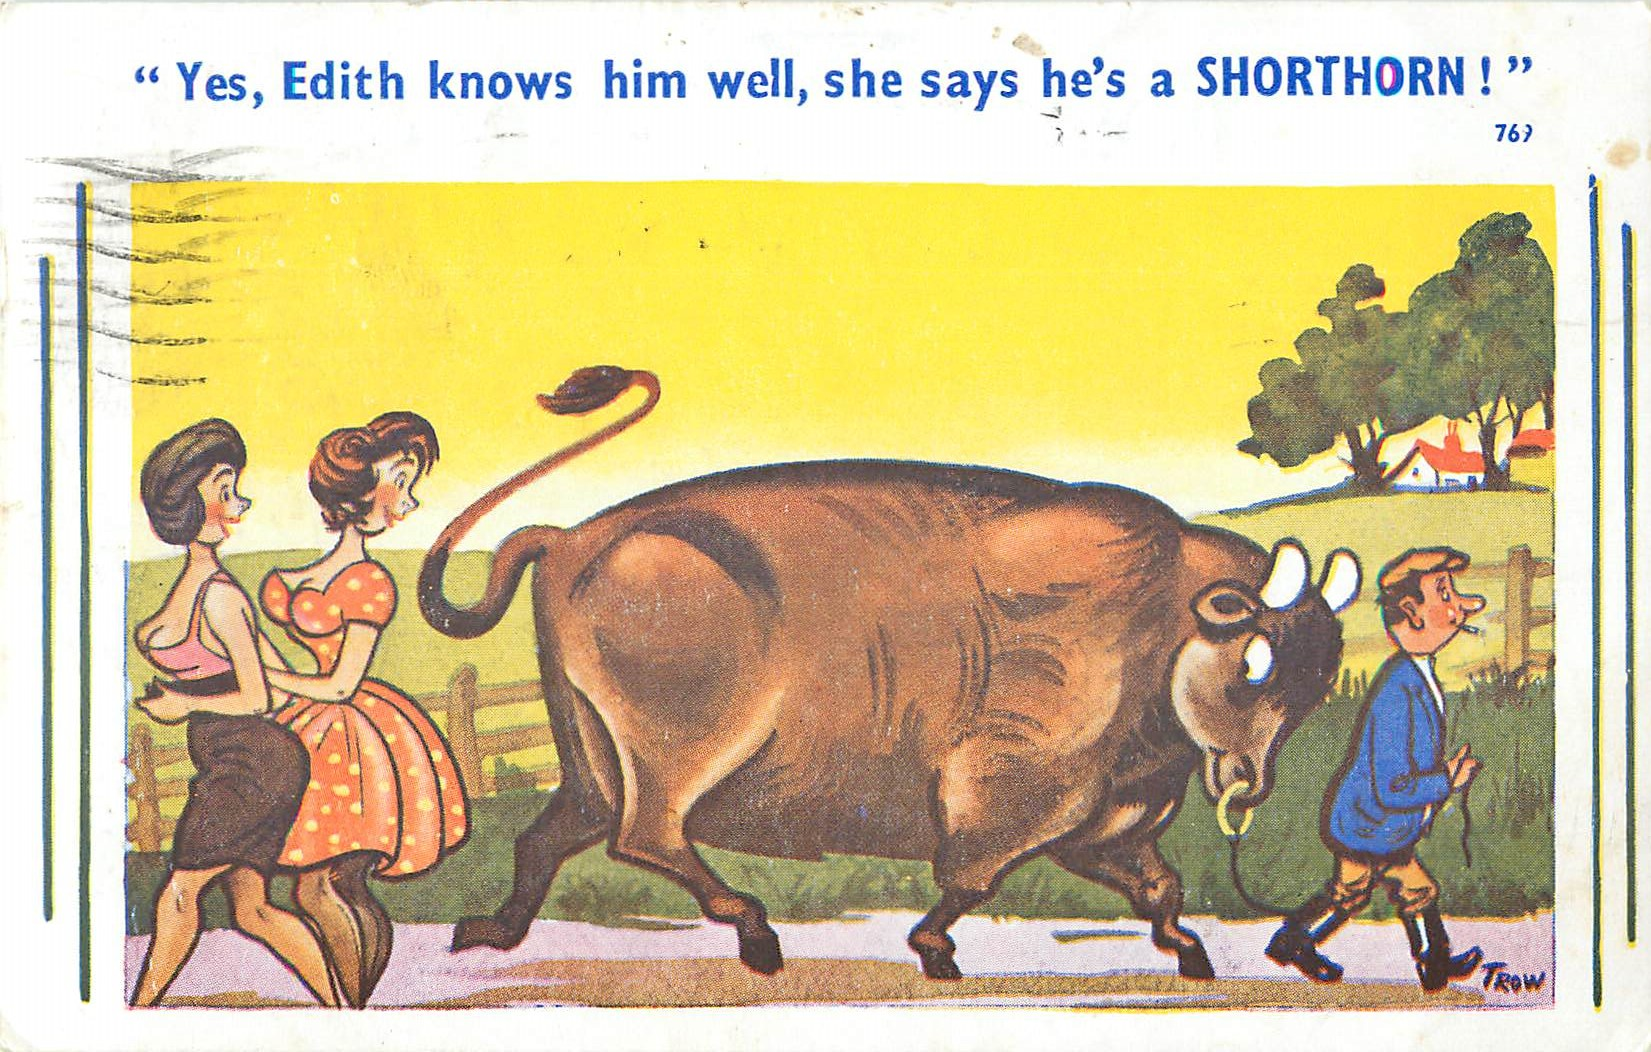 """She Says he's a Shorthorn!"""